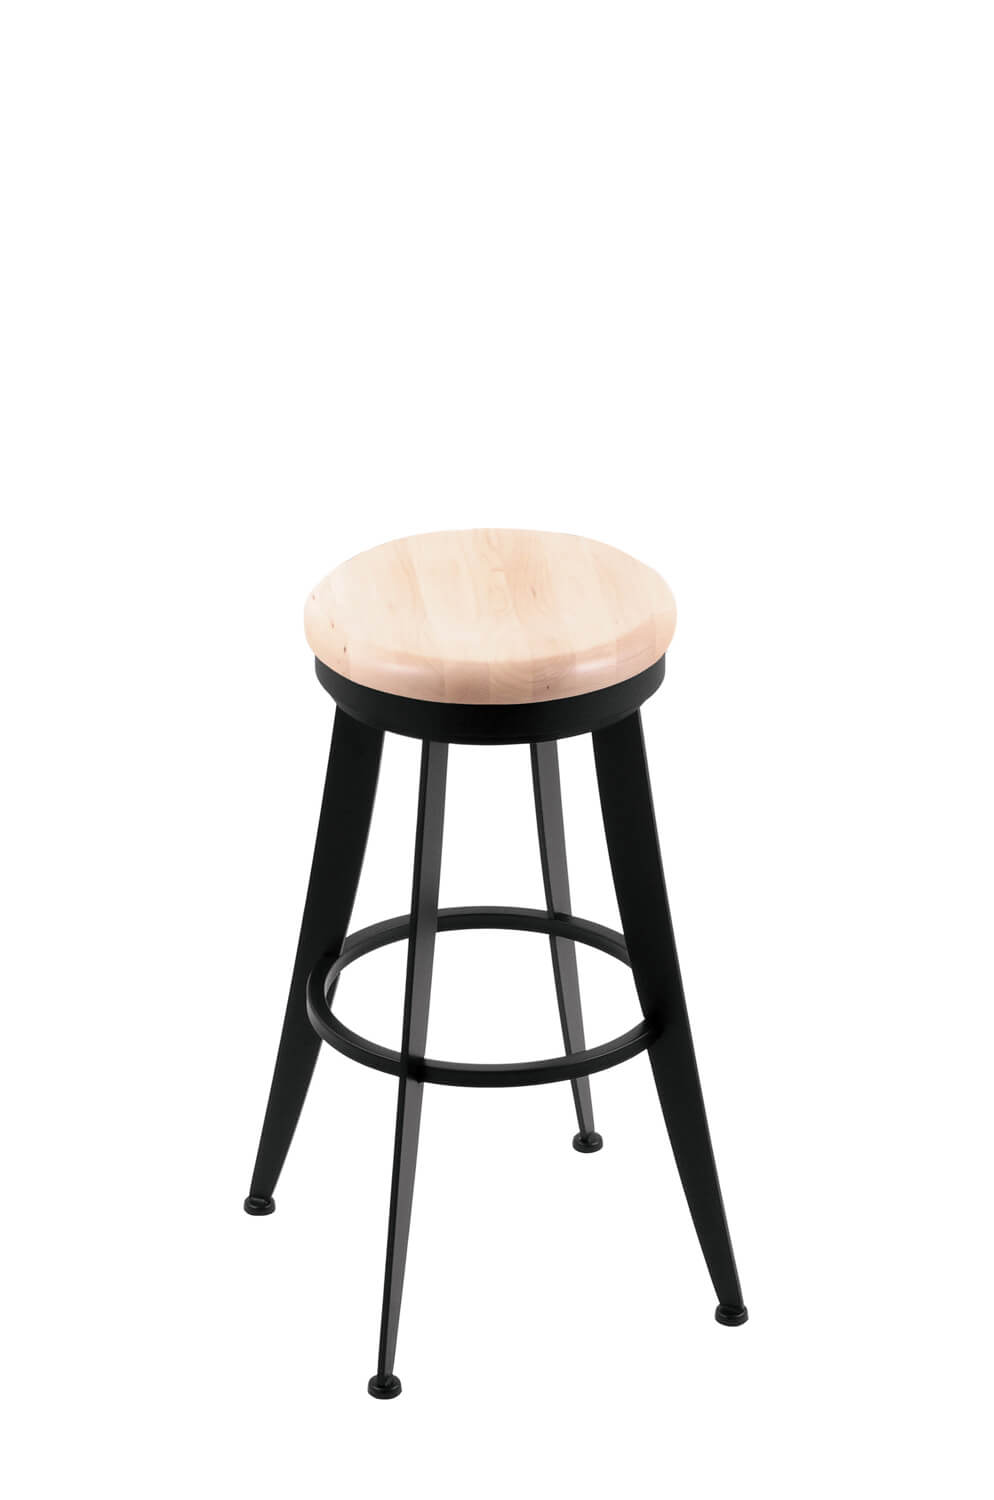 Prime 900 Laser Backless Swivel Bar Stool 30 Onthecornerstone Fun Painted Chair Ideas Images Onthecornerstoneorg